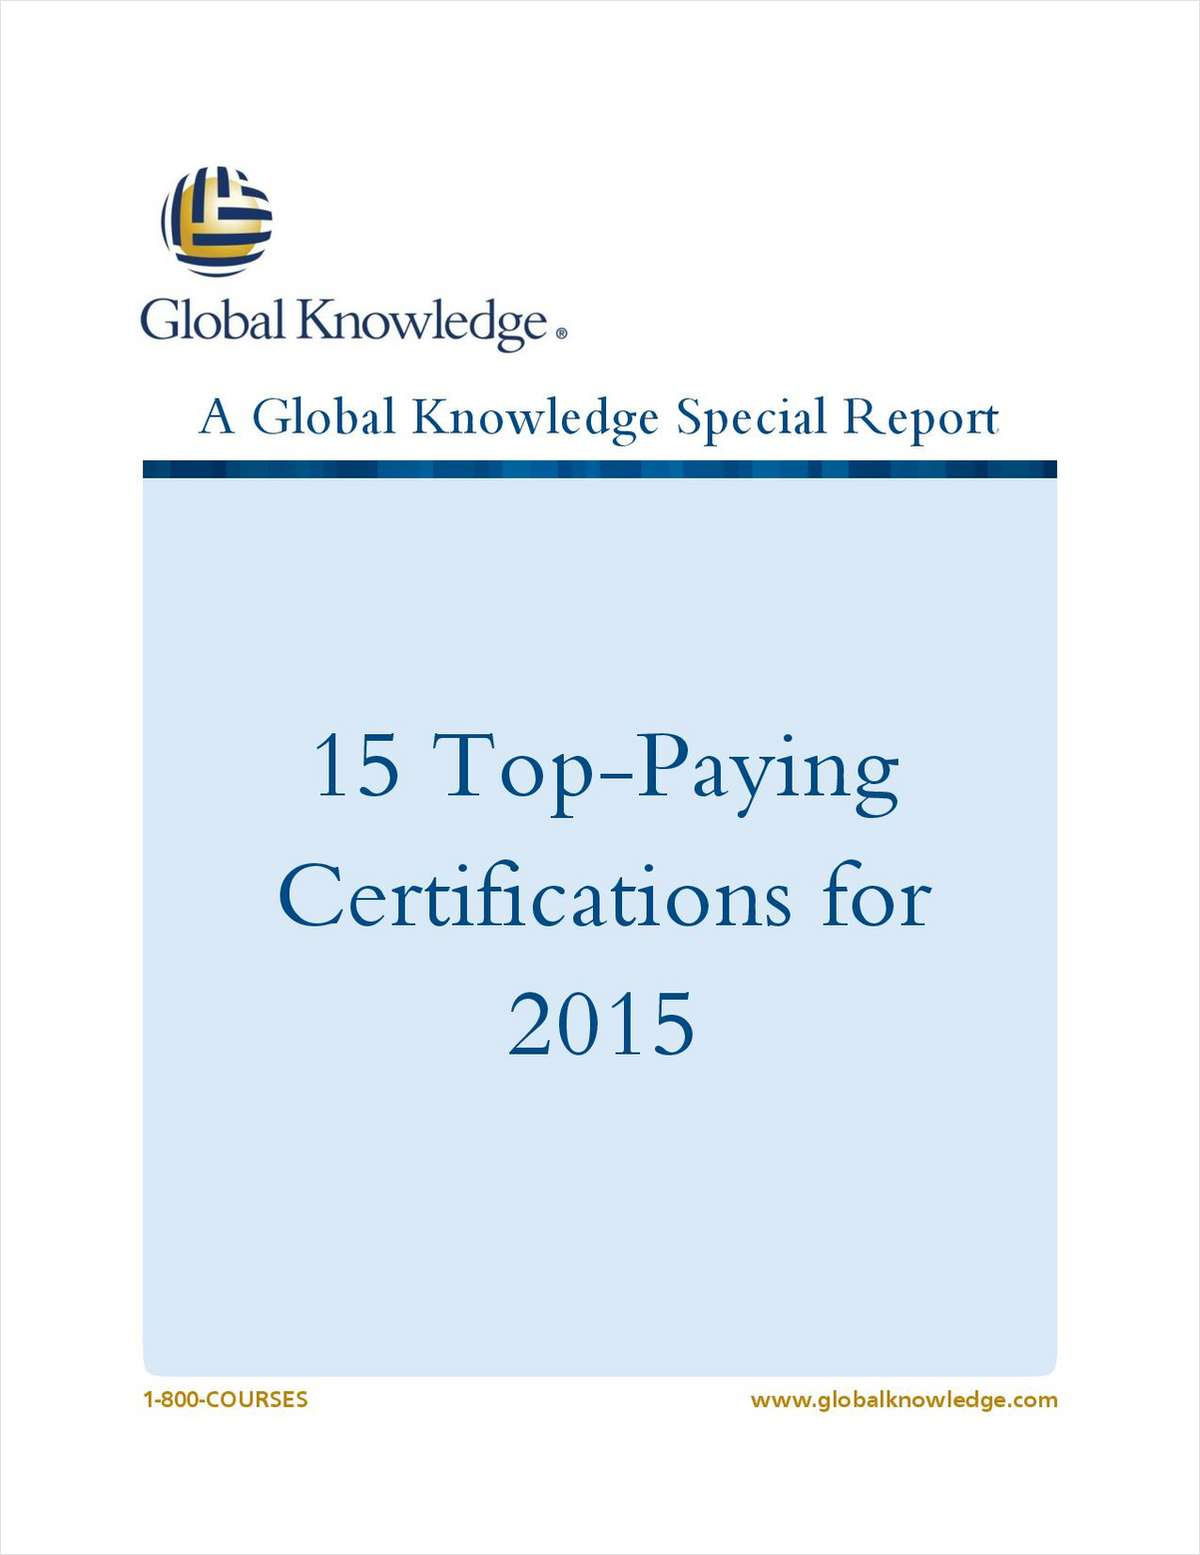 15 Top-Paying Certifications for 2015